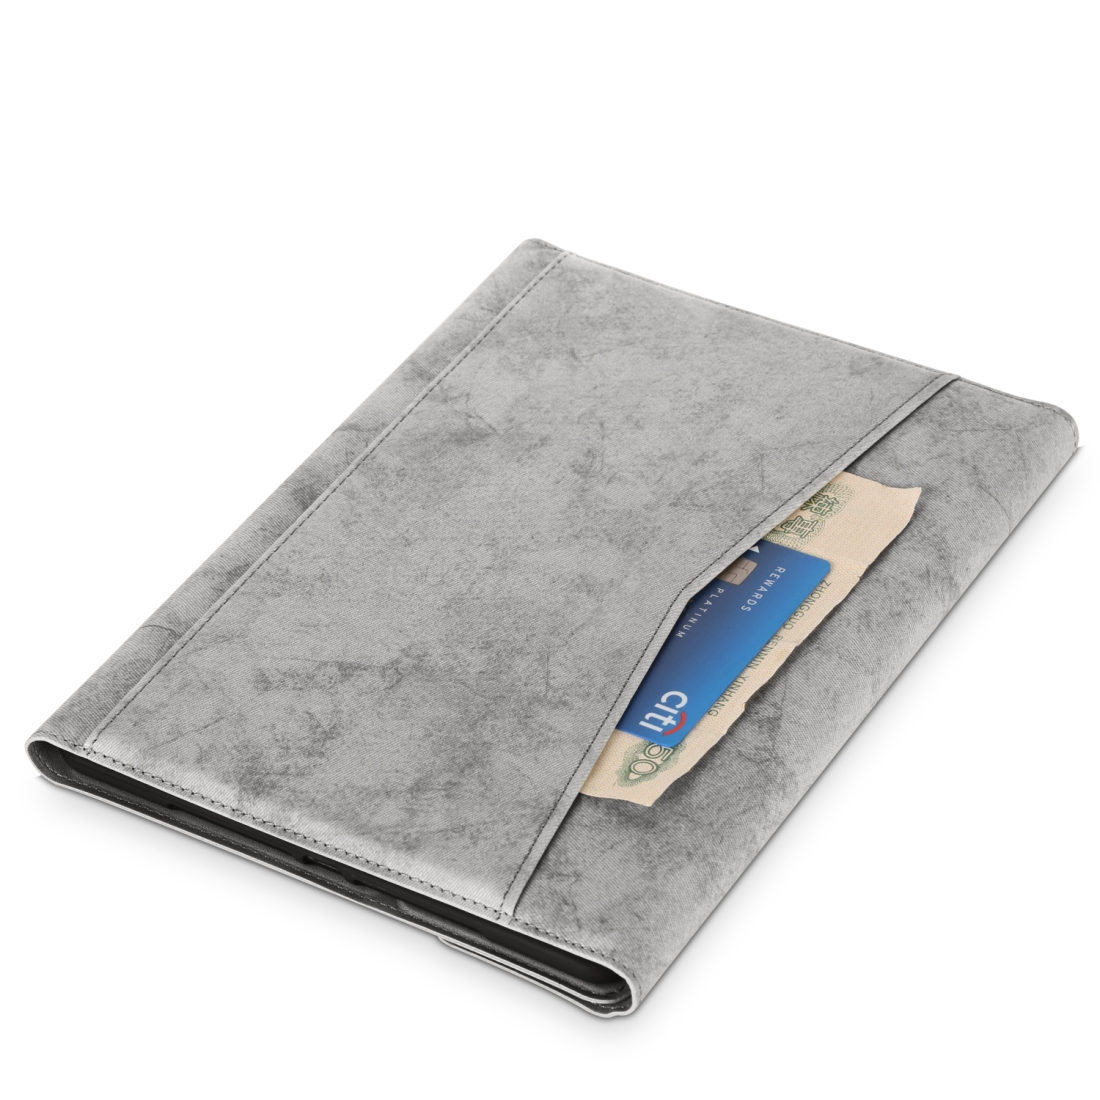 iPad Air 2 Case For iPad Air /Air 2 (2019), Leather Case Without Keyboard (Grey)